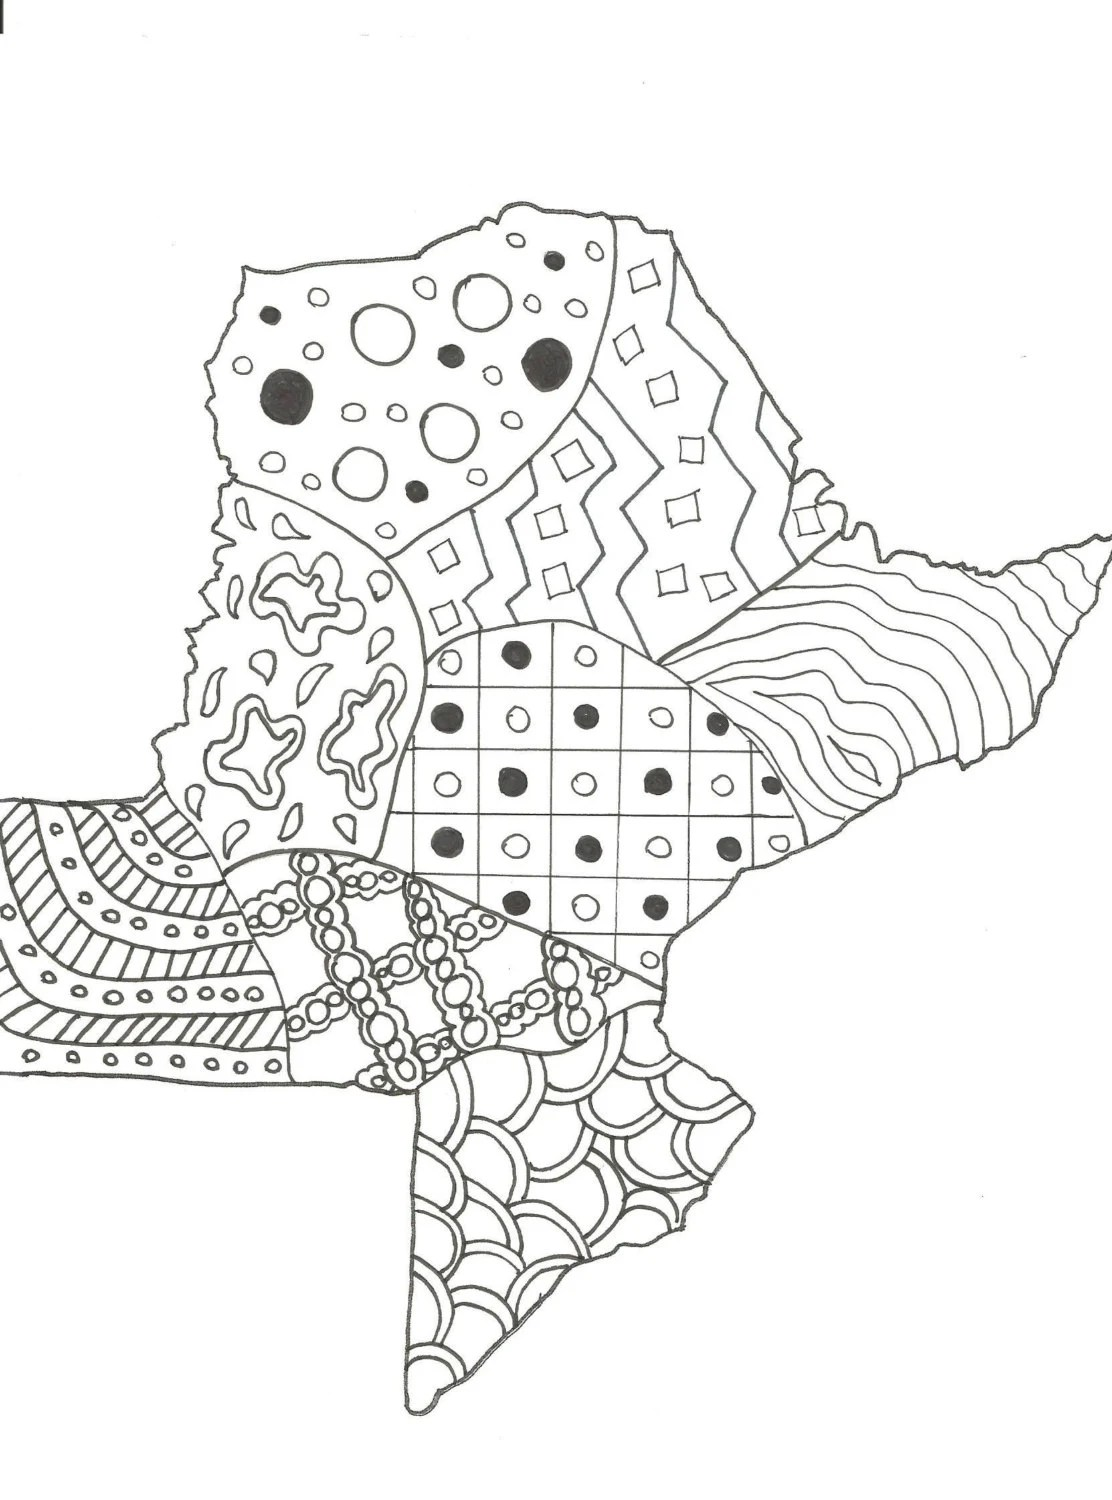 Printable coloring page. Zendoodle. State map of Texas.